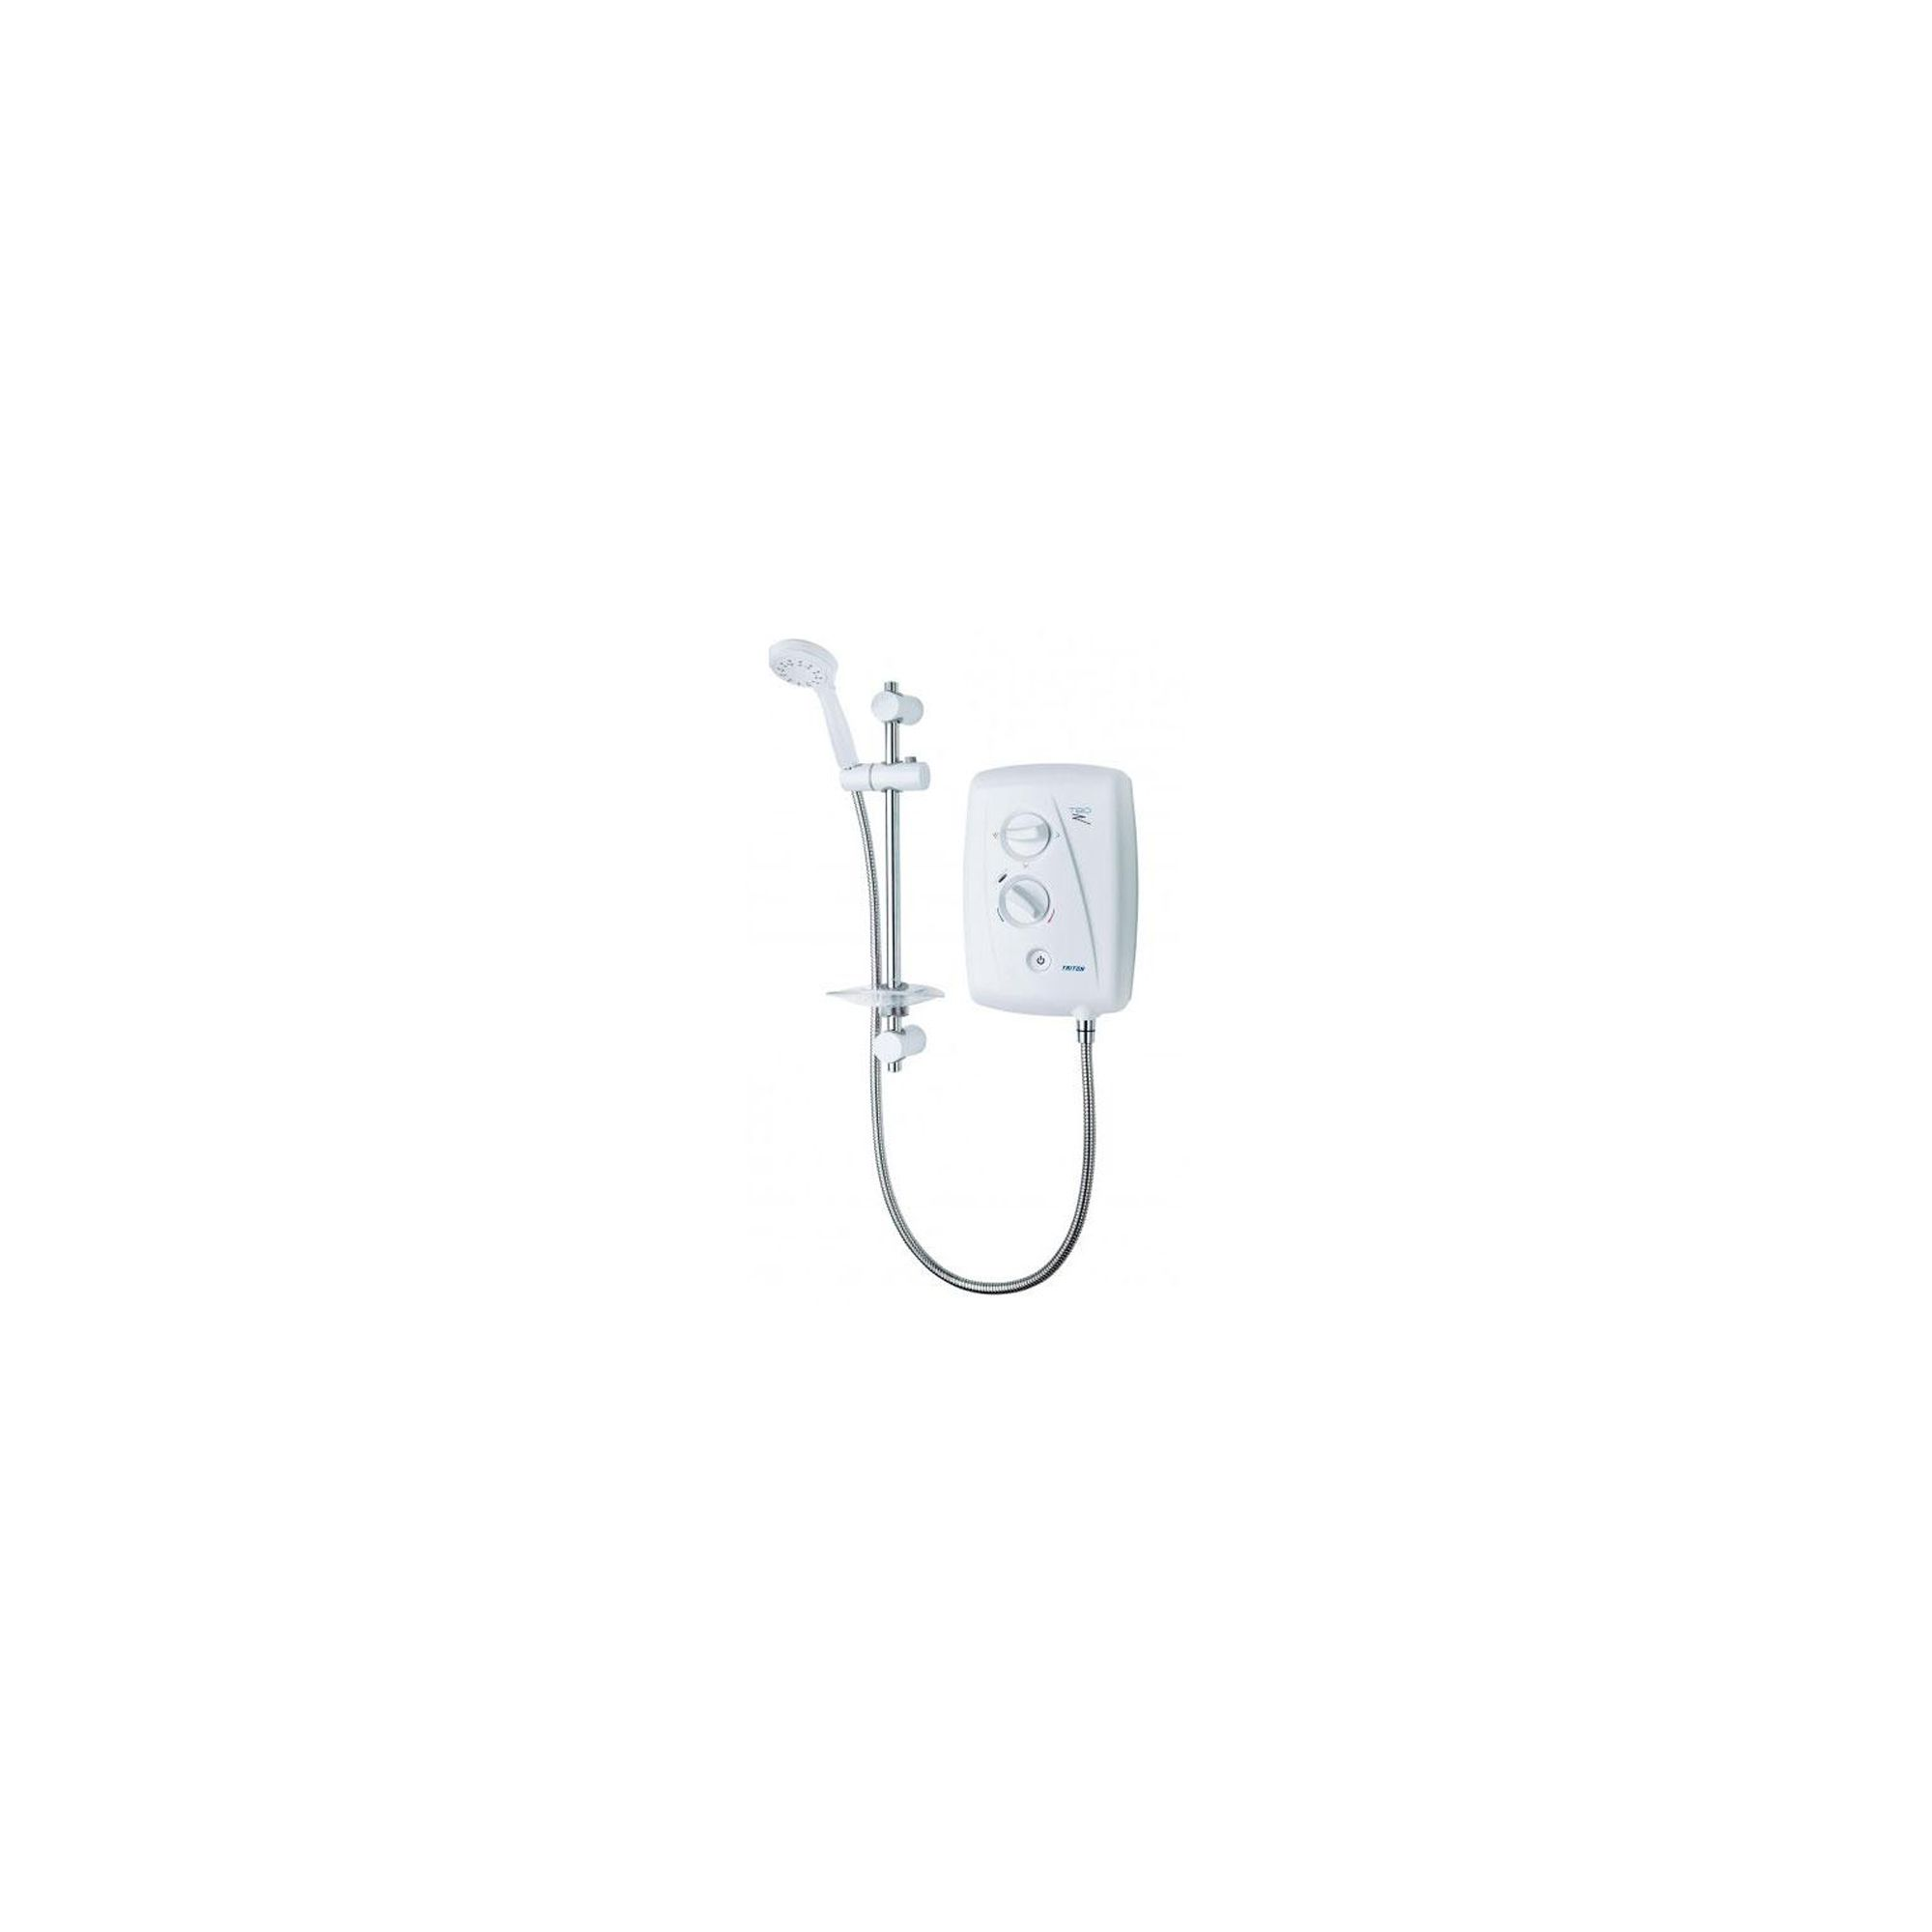 Triton T80Z Fast-Fit Electric Shower White/Chrome 8.5 kW at Tesco Direct